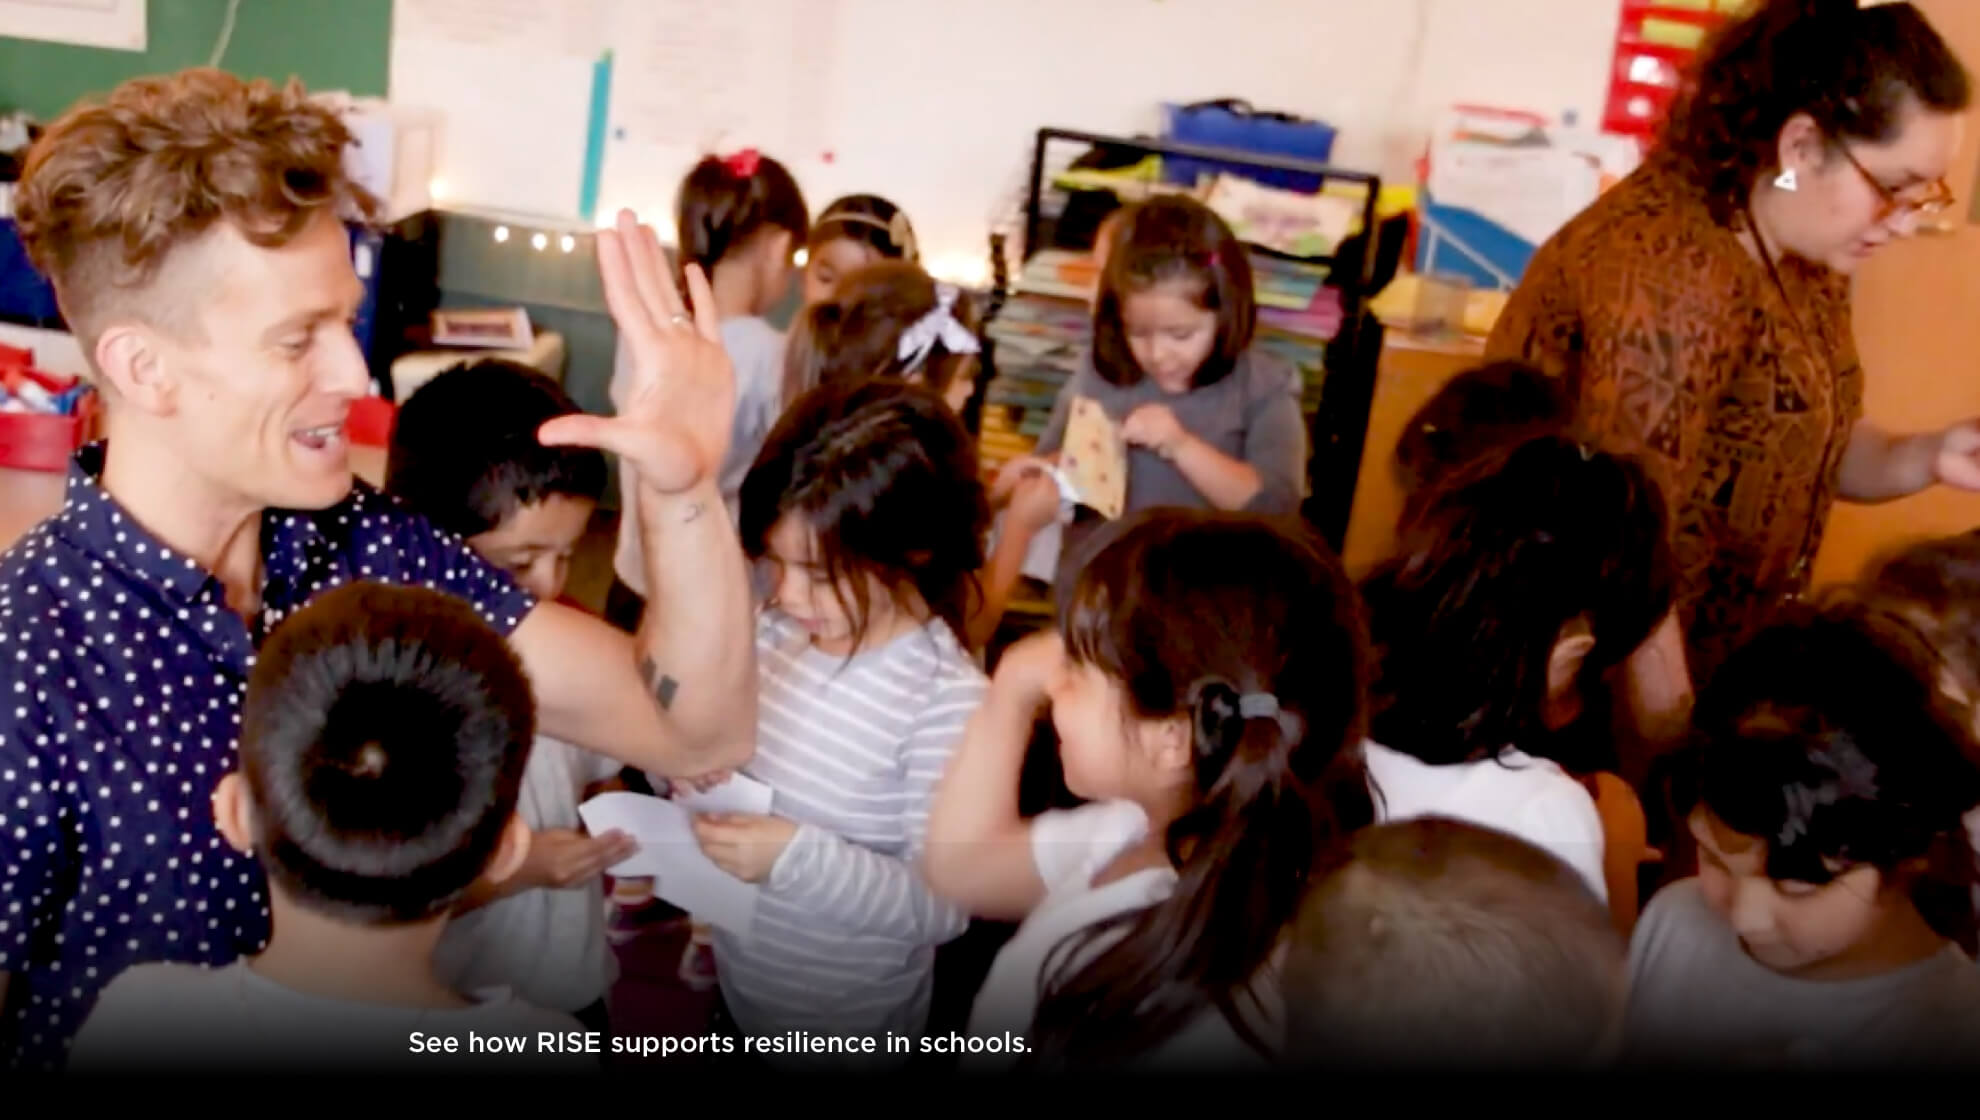 See how RISE supports resilience in schools.